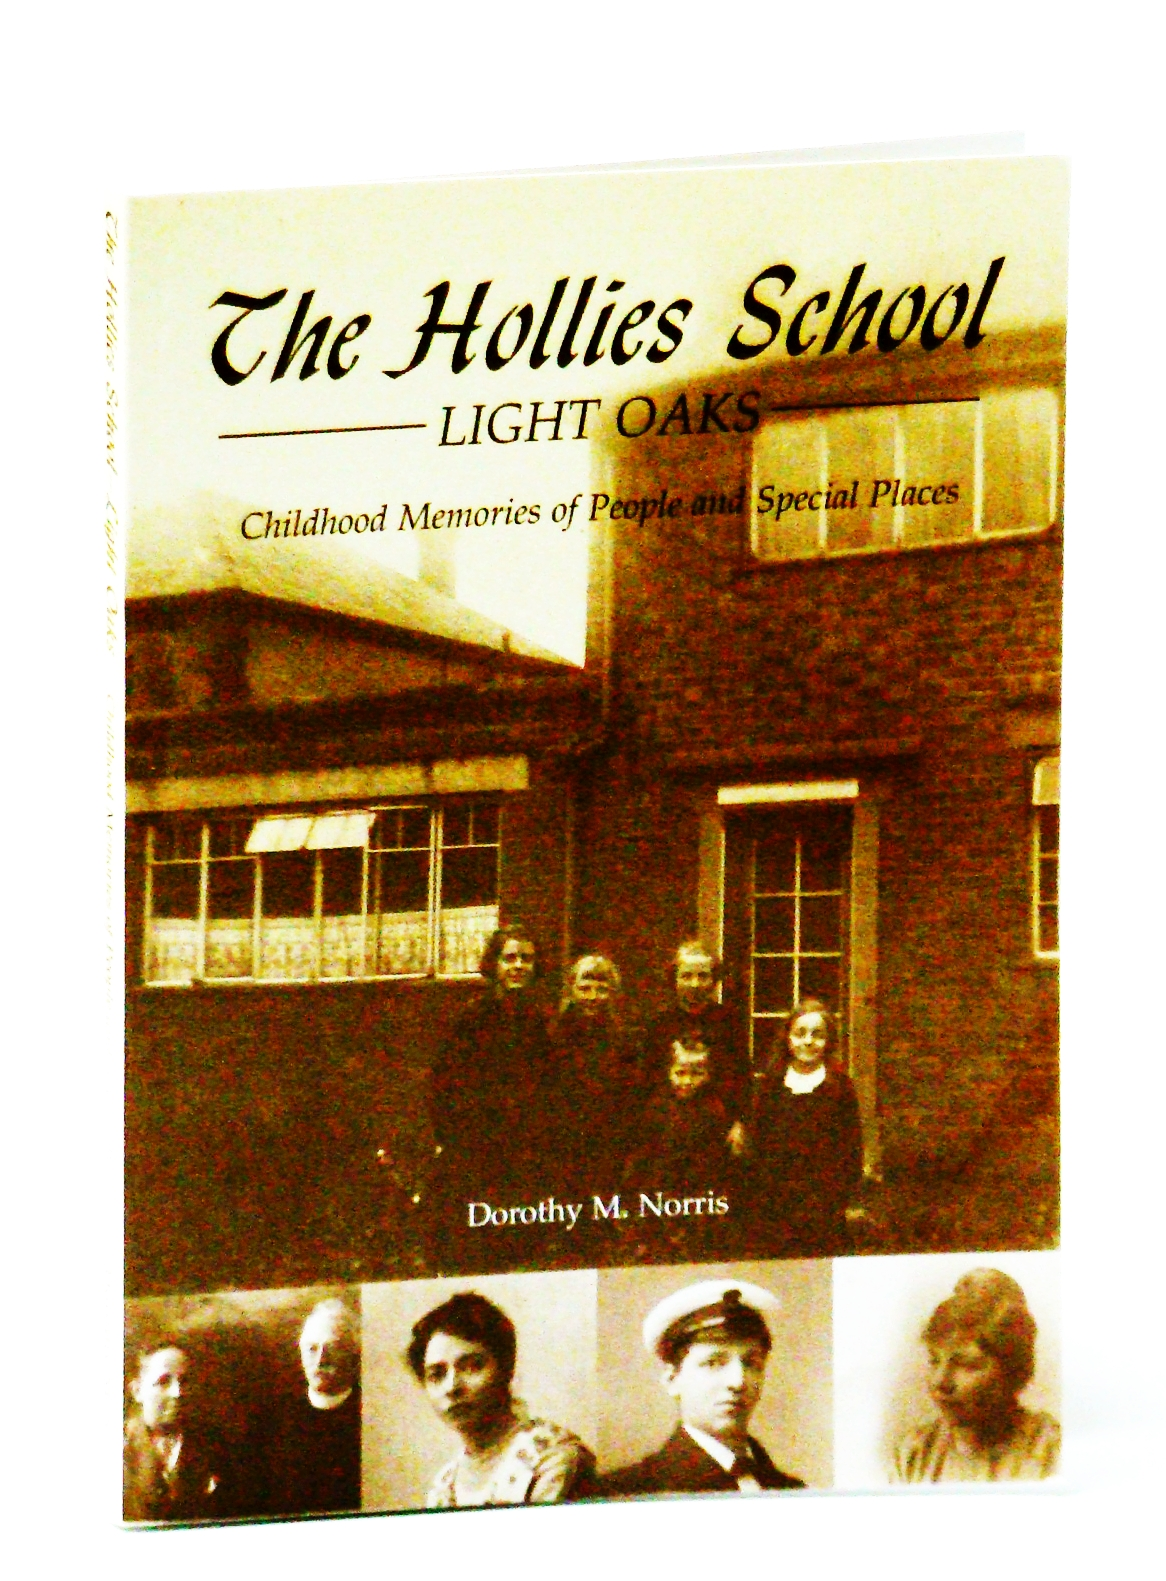 Image for The Hollies School Light Oaks: Childhood Memories of People and Special Places